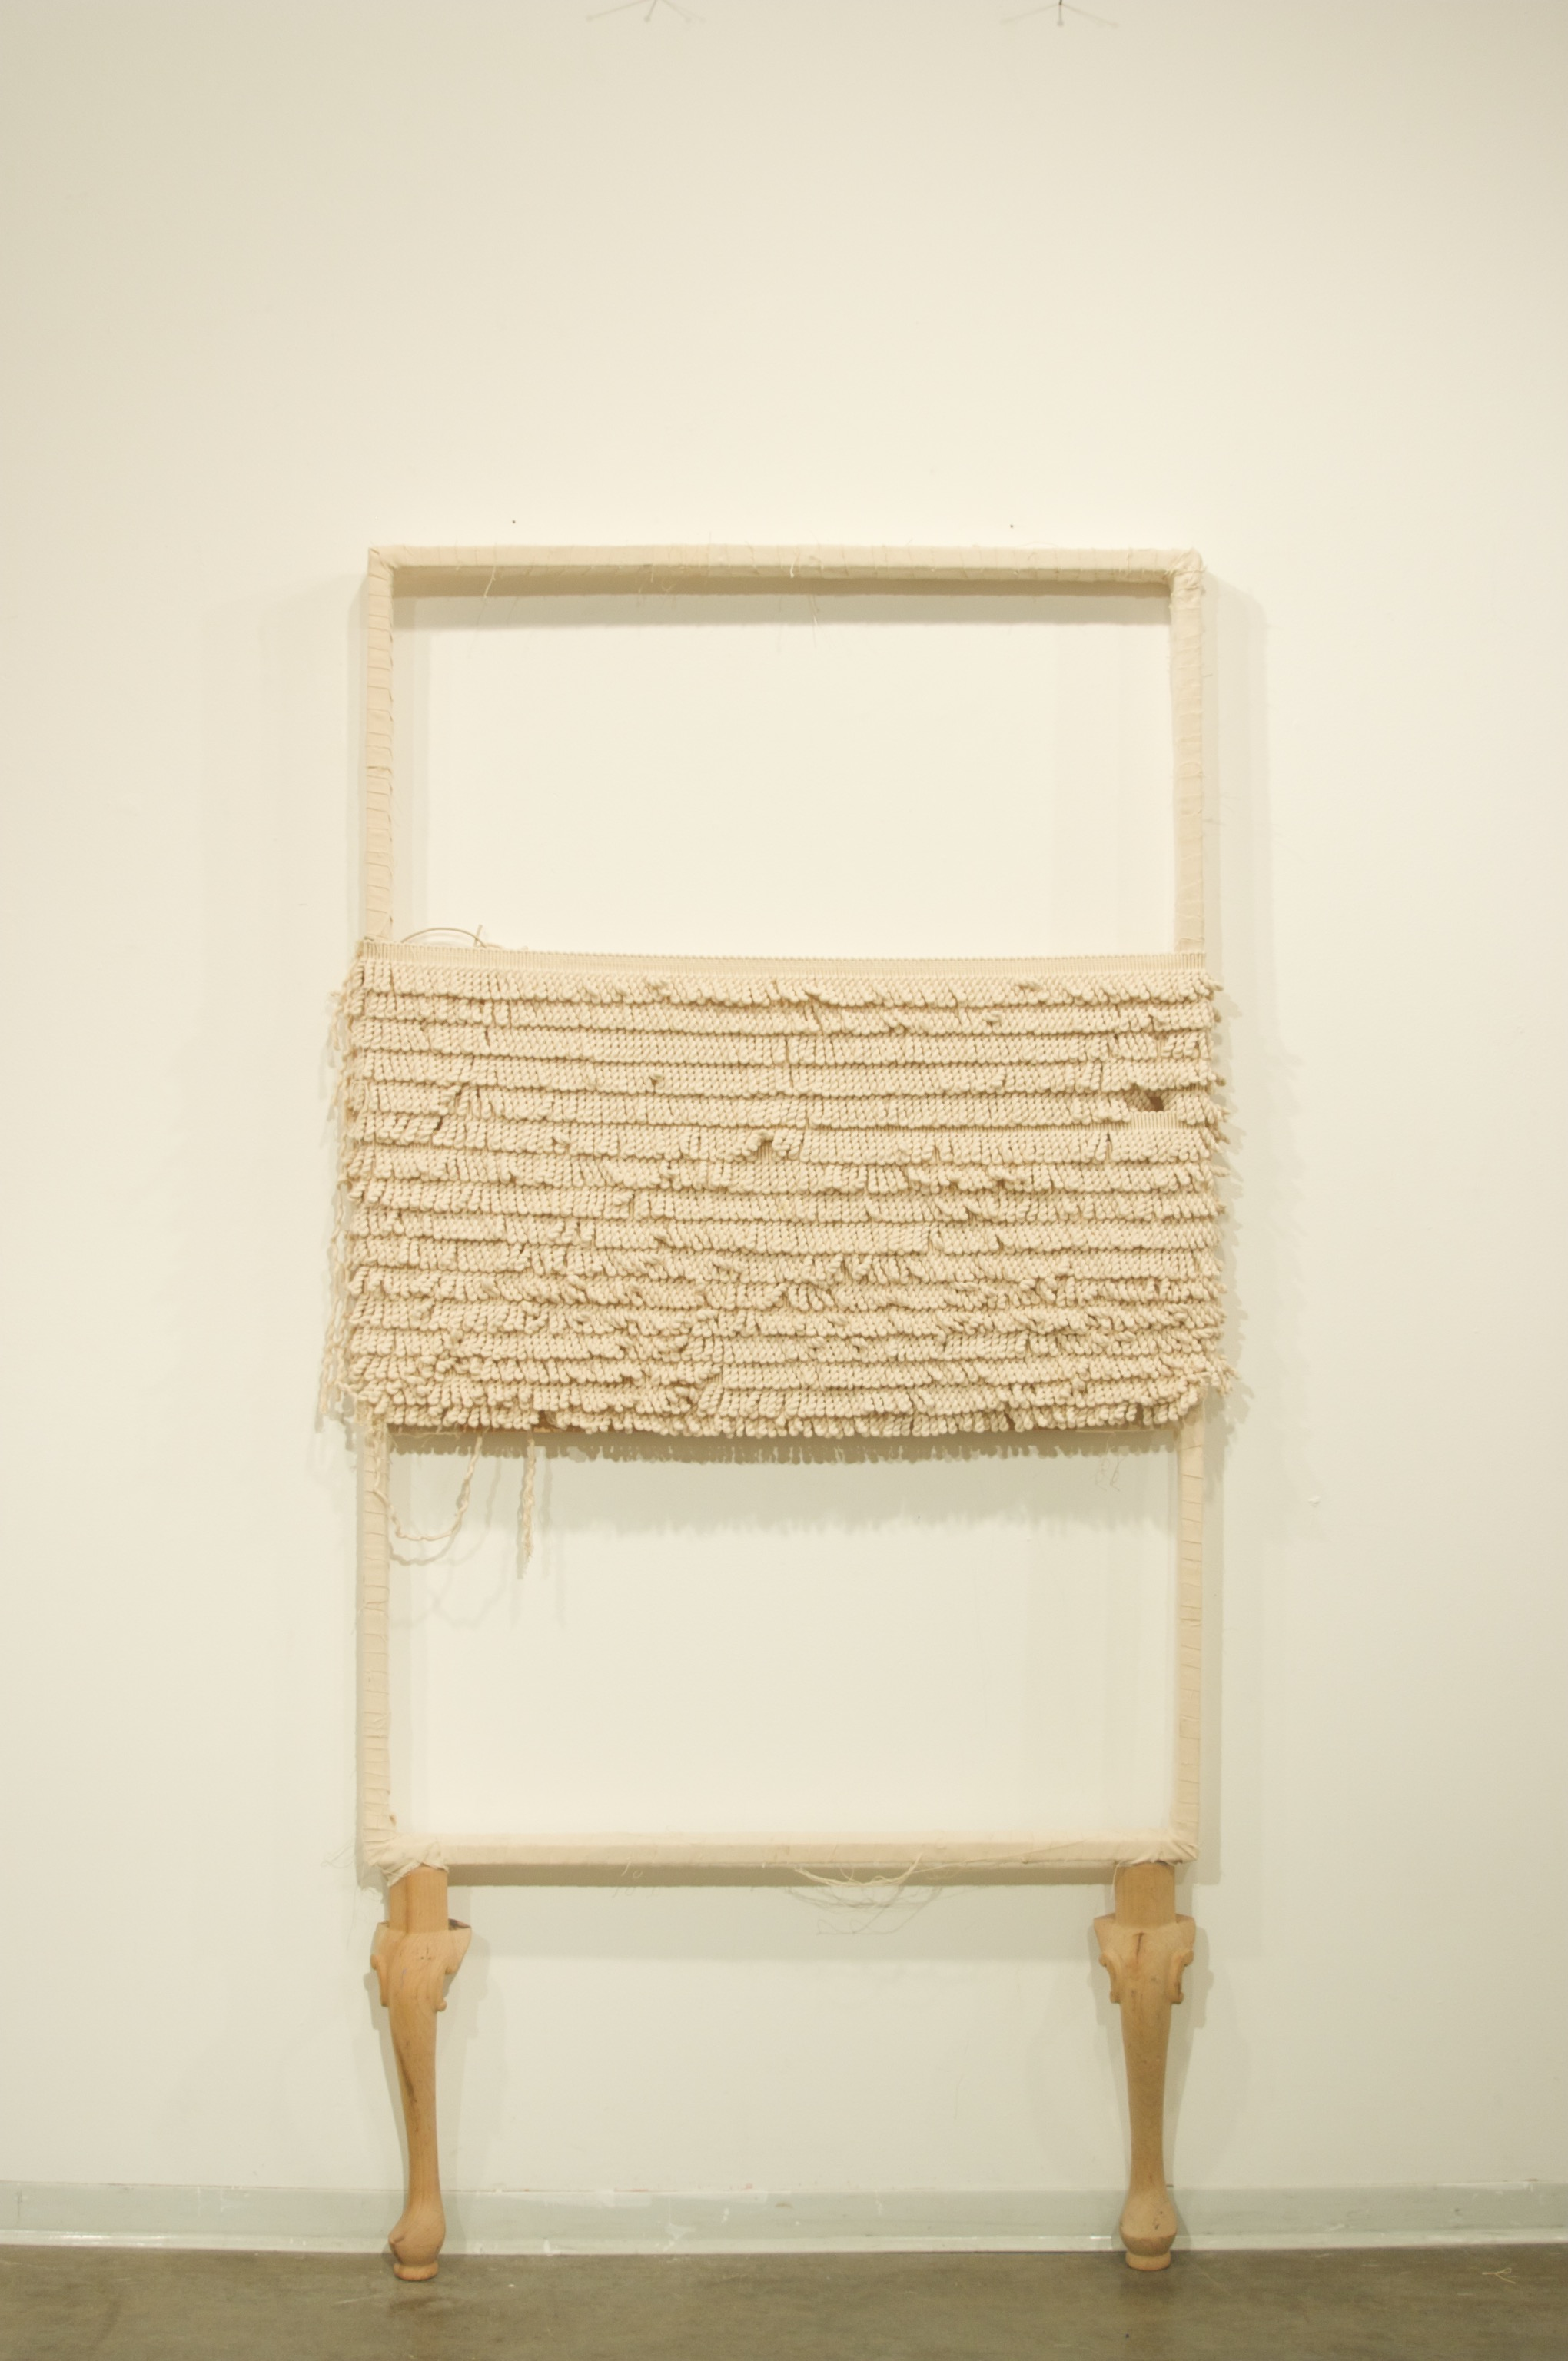 The Last Painting , canvas with cotton trim, and found wooden legs, 33 x 69 inches